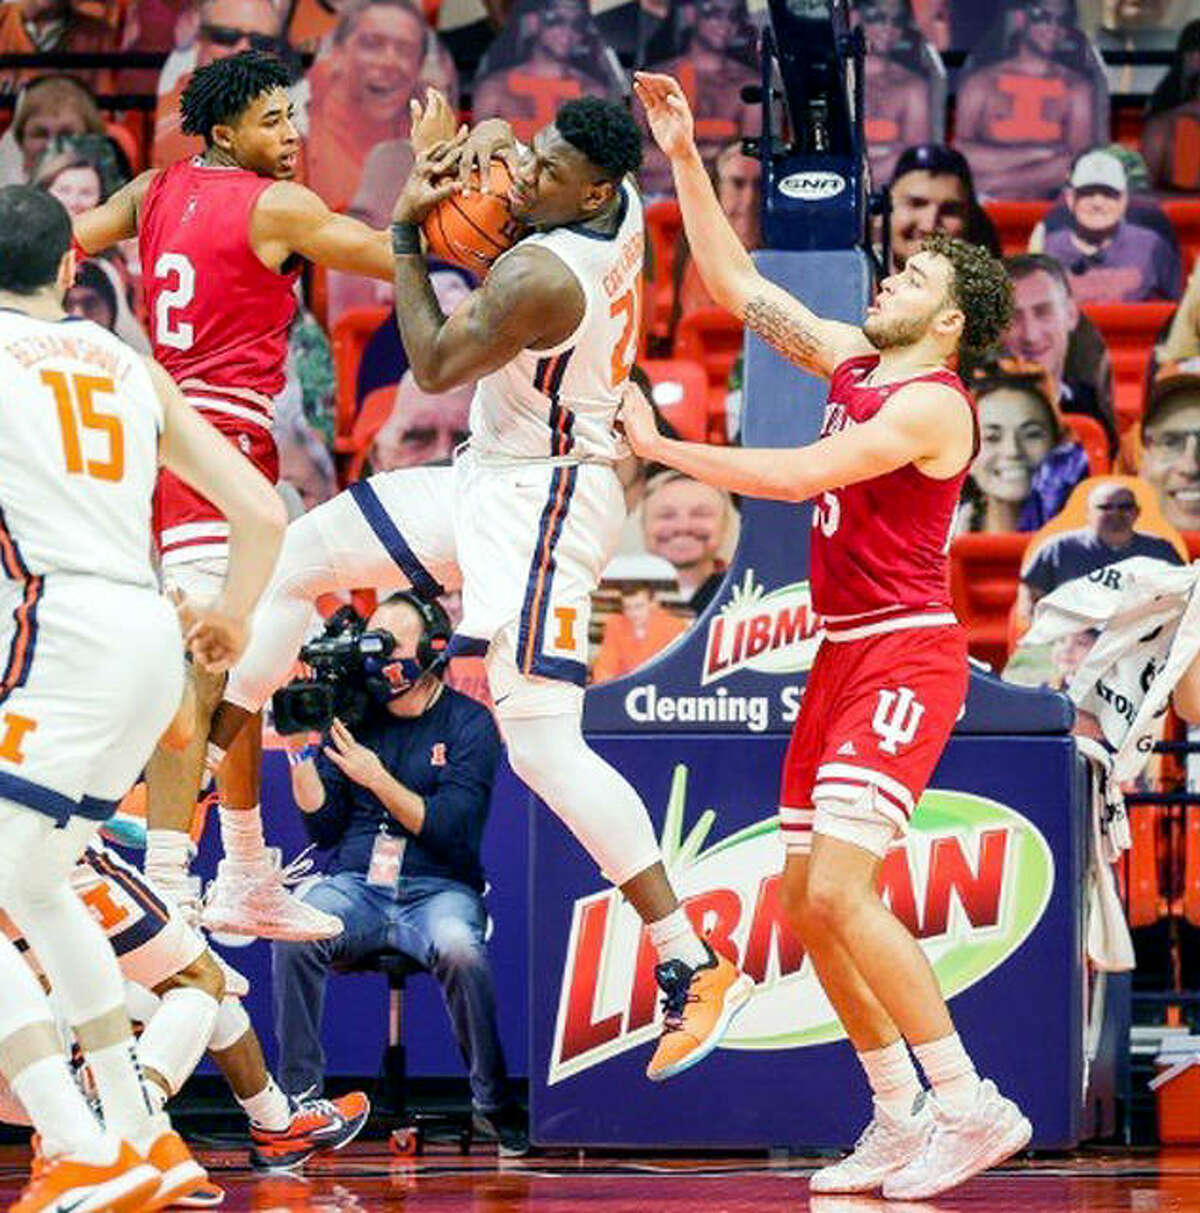 Kofi Cockburn of Illinois, center, pulls down a rebound in a game against Indiana last week at State Farm Center in Champaign.